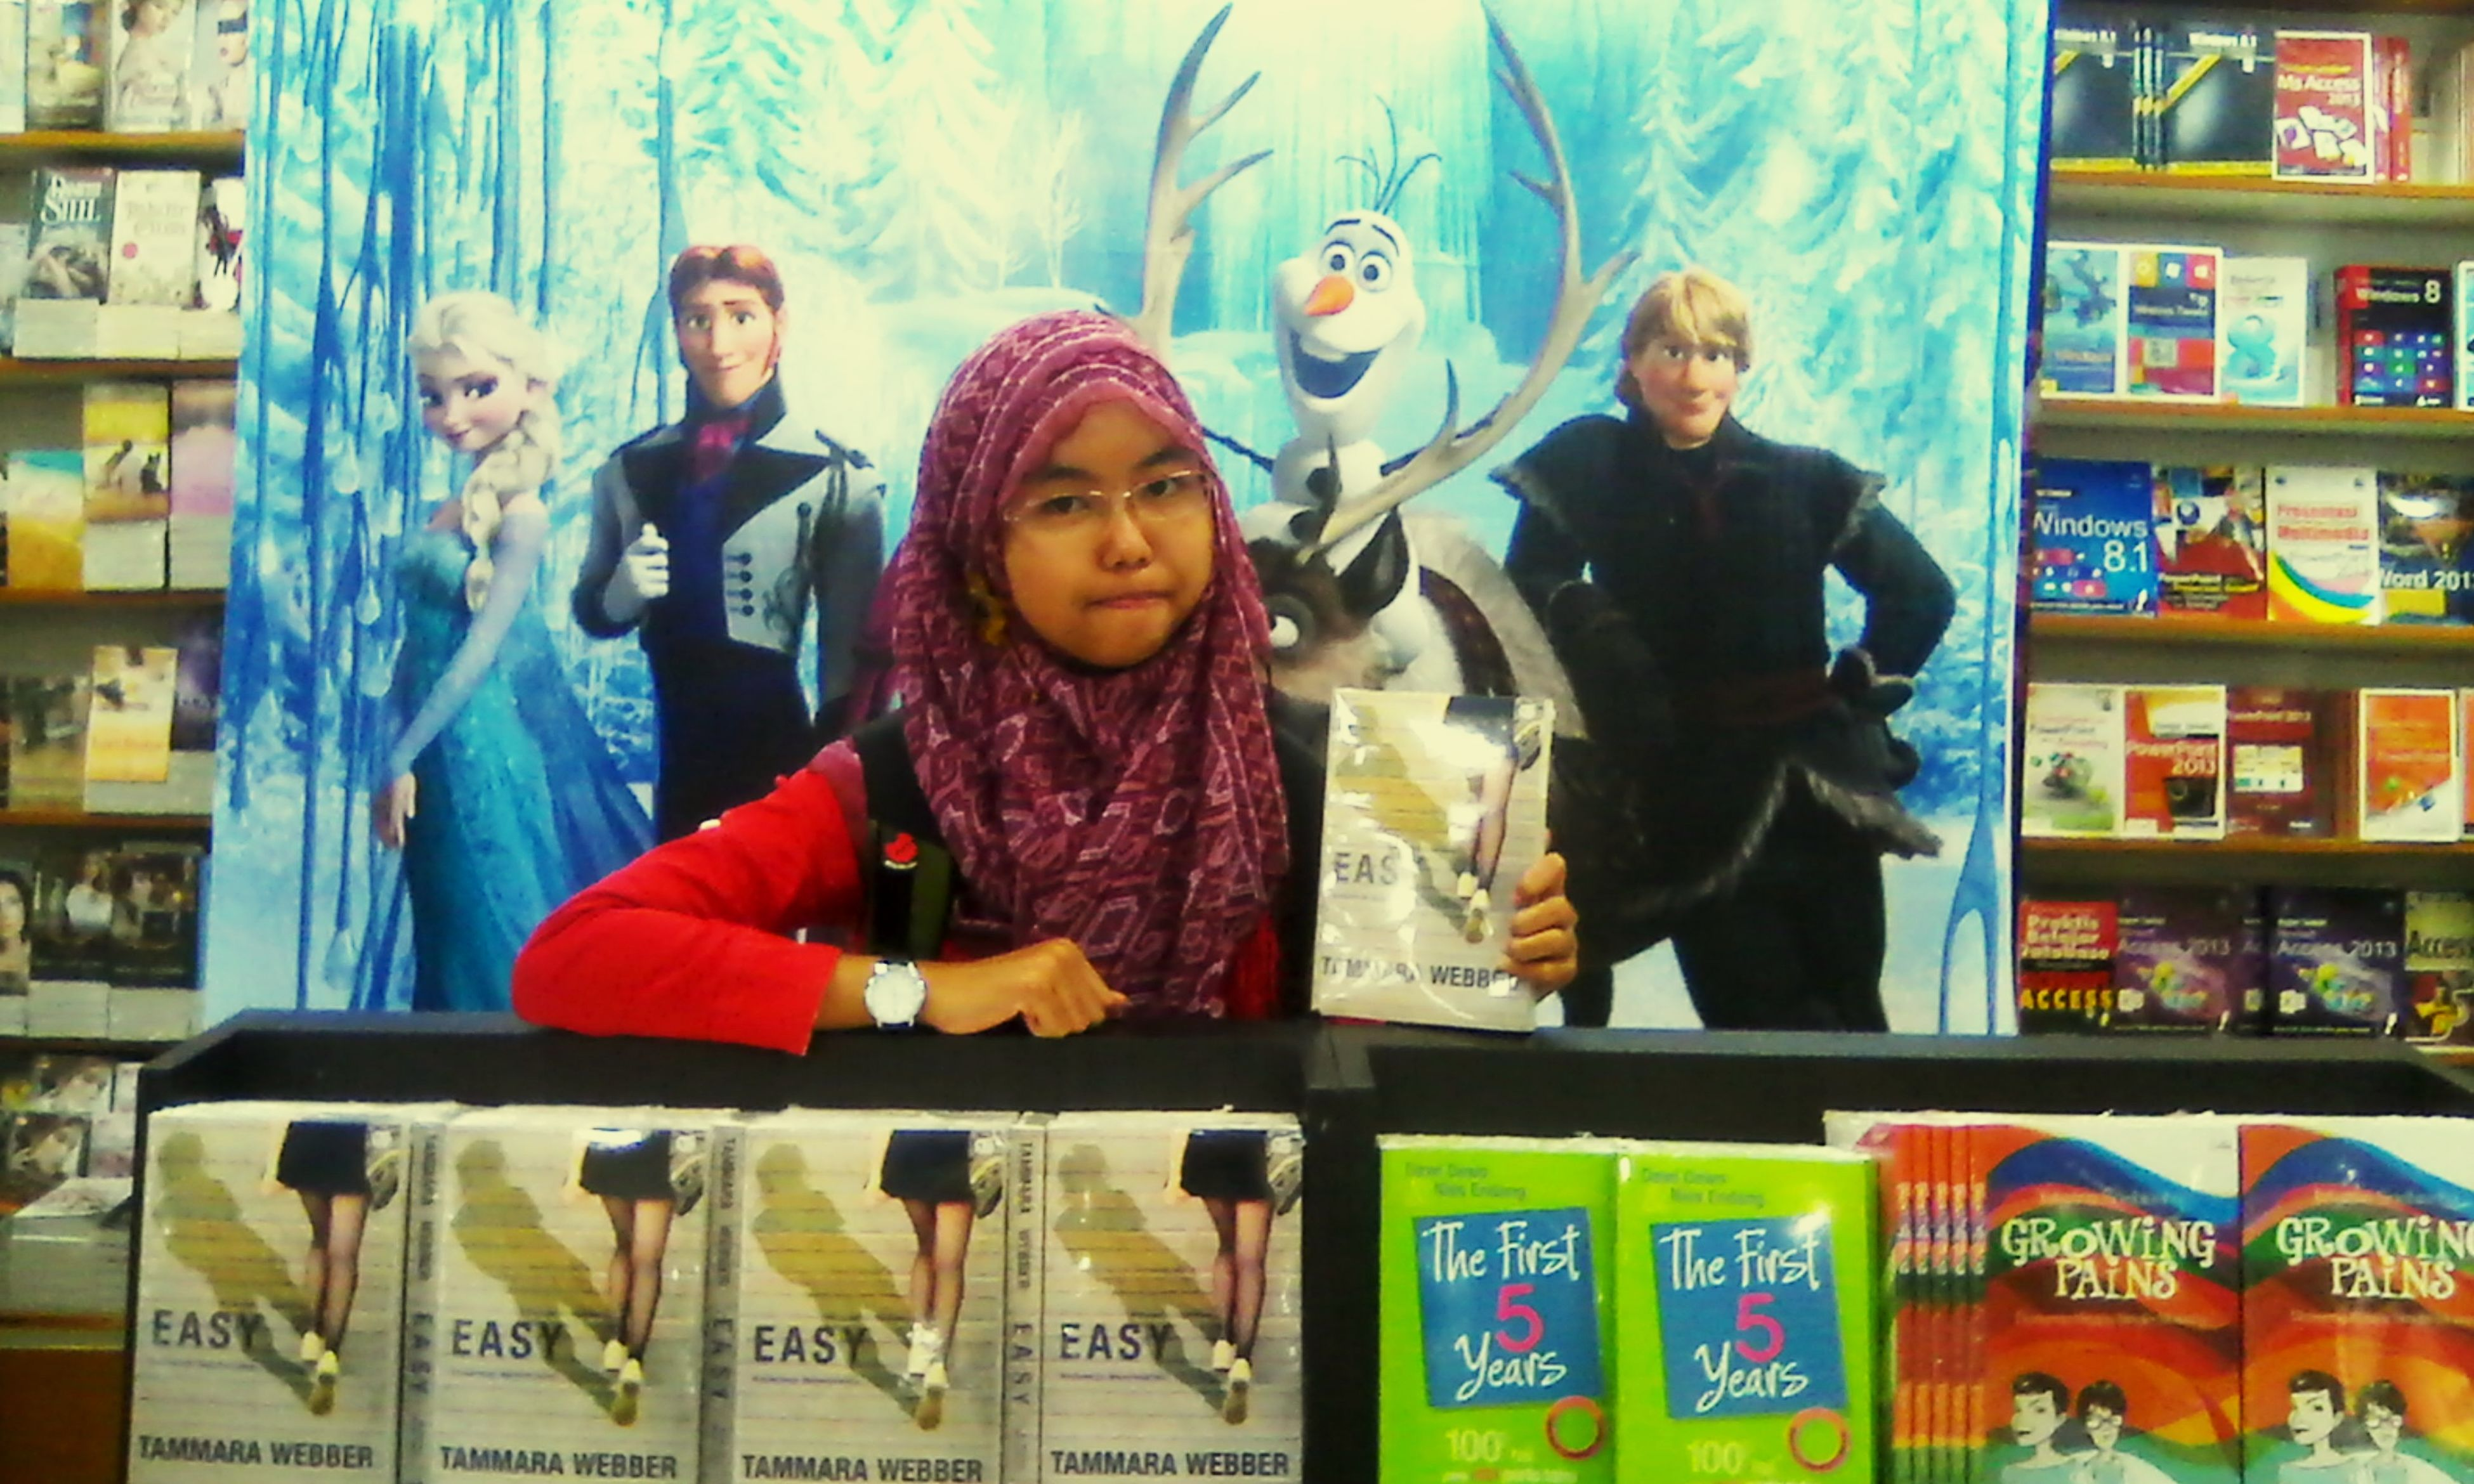 This book Reading Gramedia Greates Book